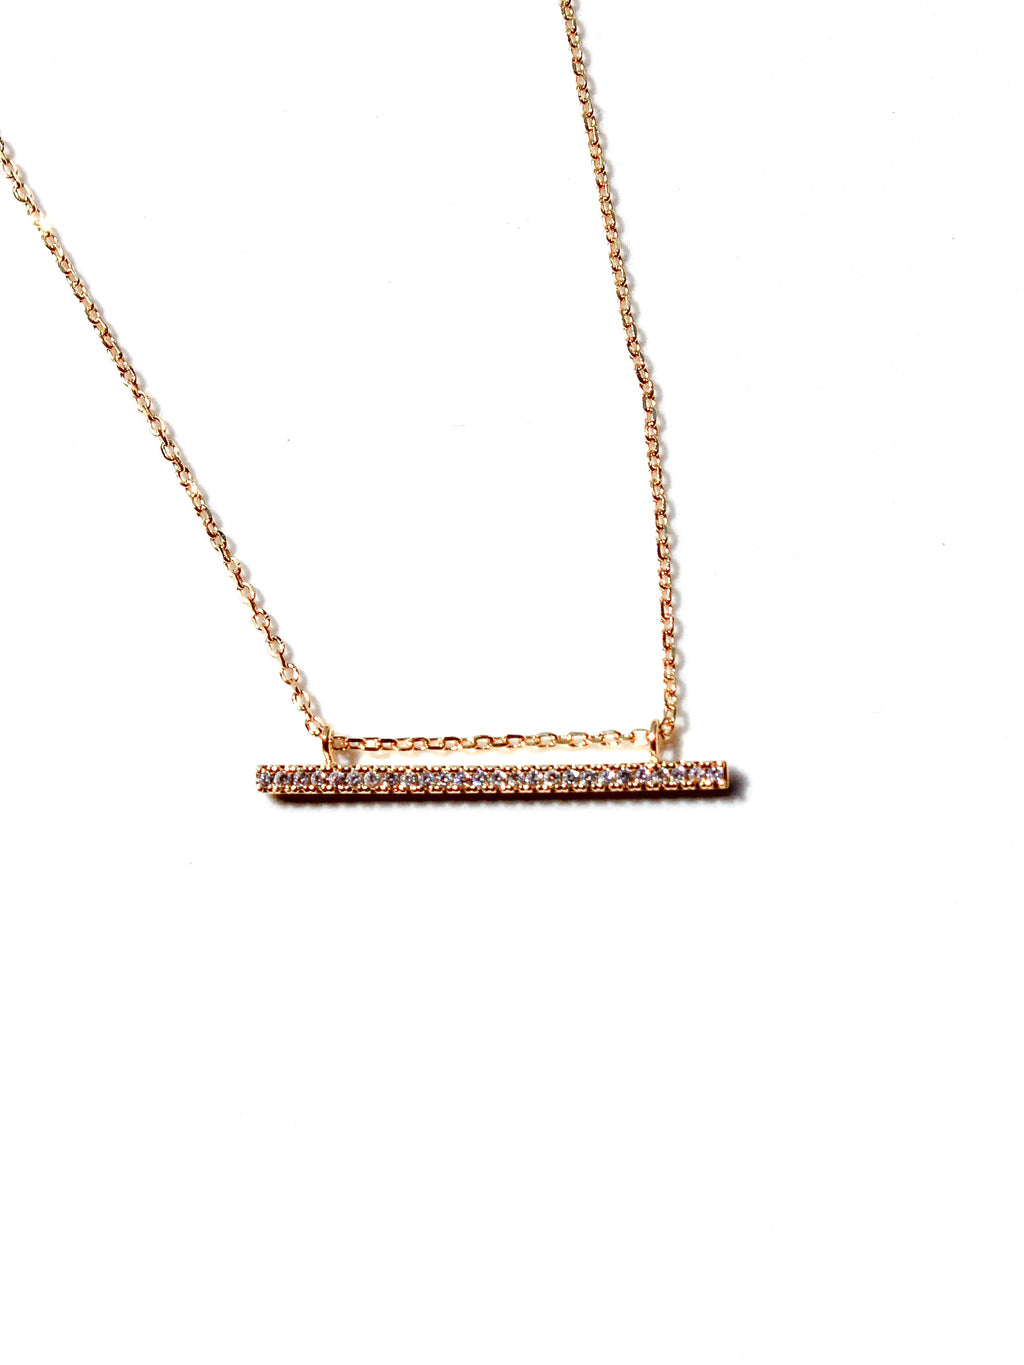 Simplistic Bar Necklace